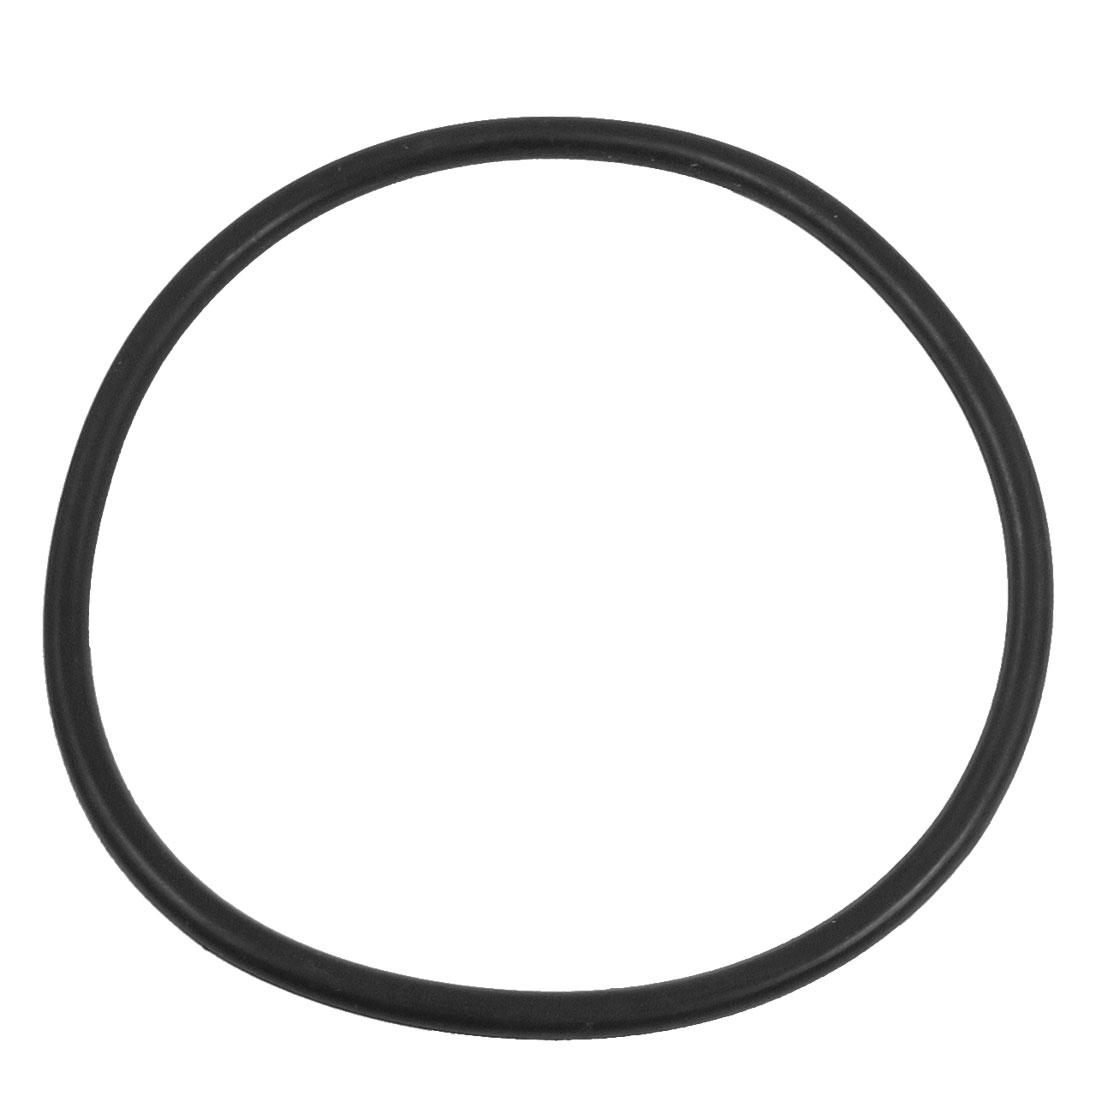 110mm x 5mm Black Rubber Industrial Flexible O Ring Seal Washer